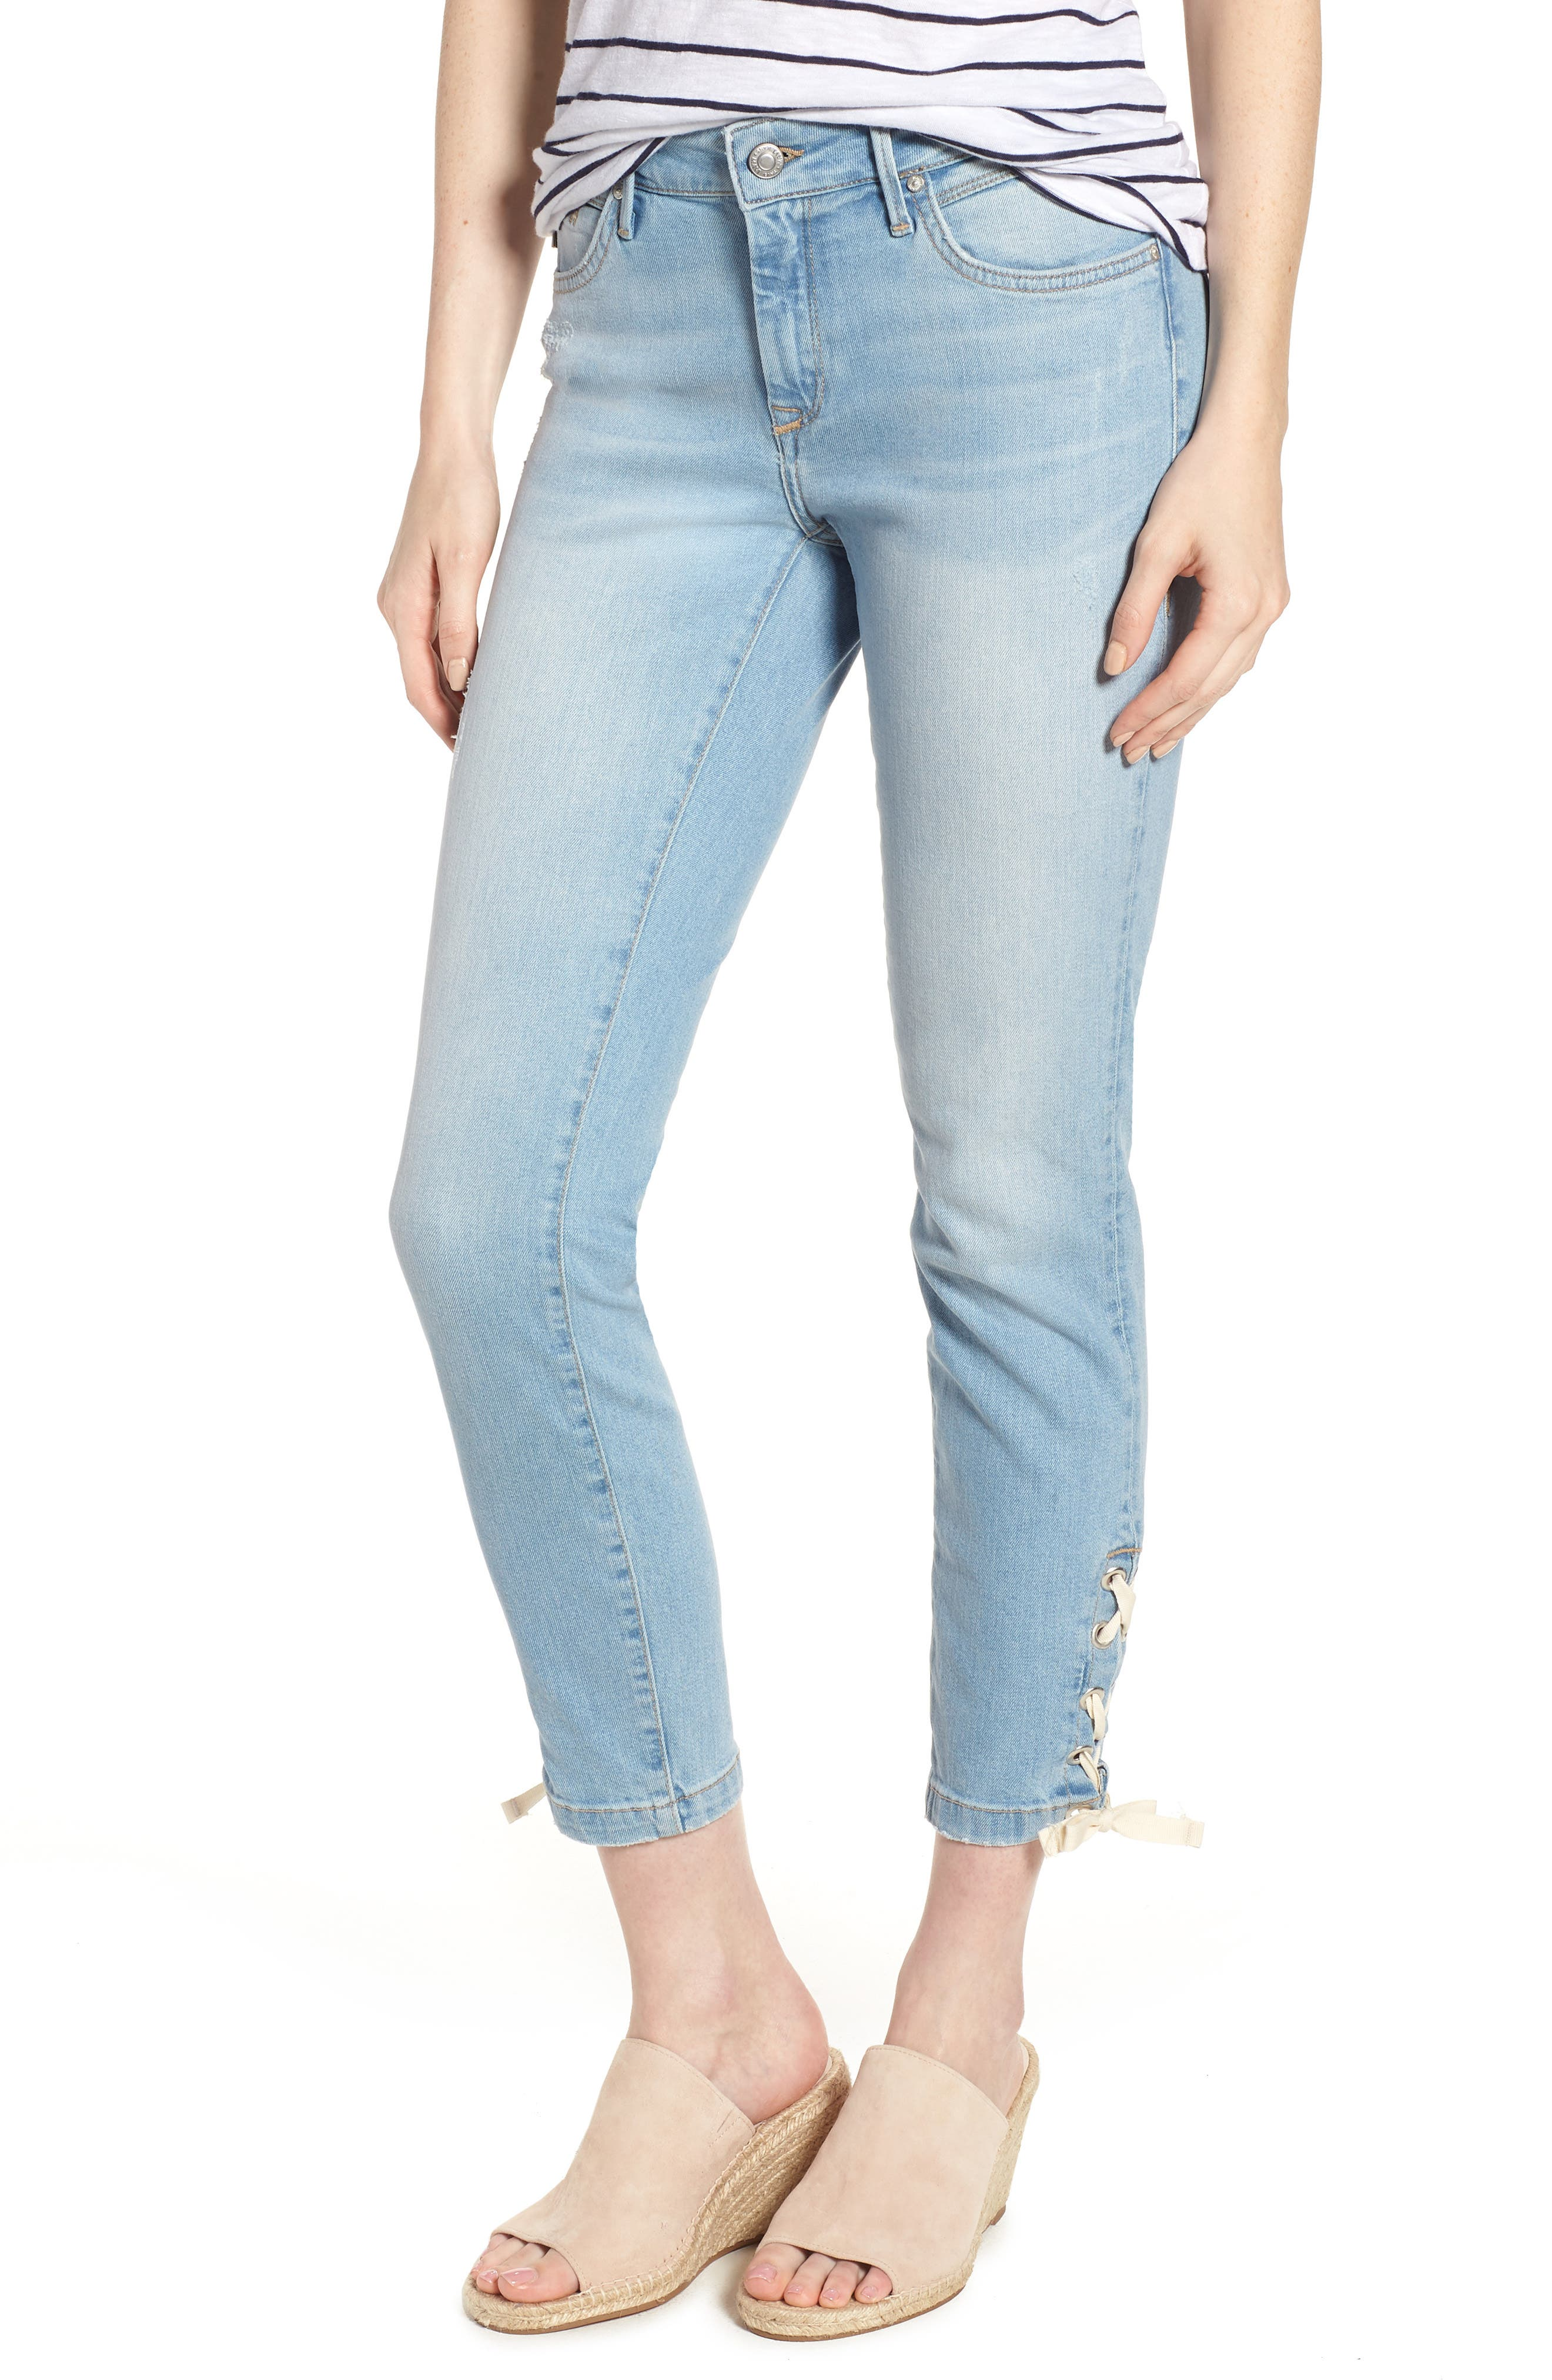 Adriana Laced Ankle Skinny Jeans,                             Main thumbnail 1, color,                             Bleach Summer Lace